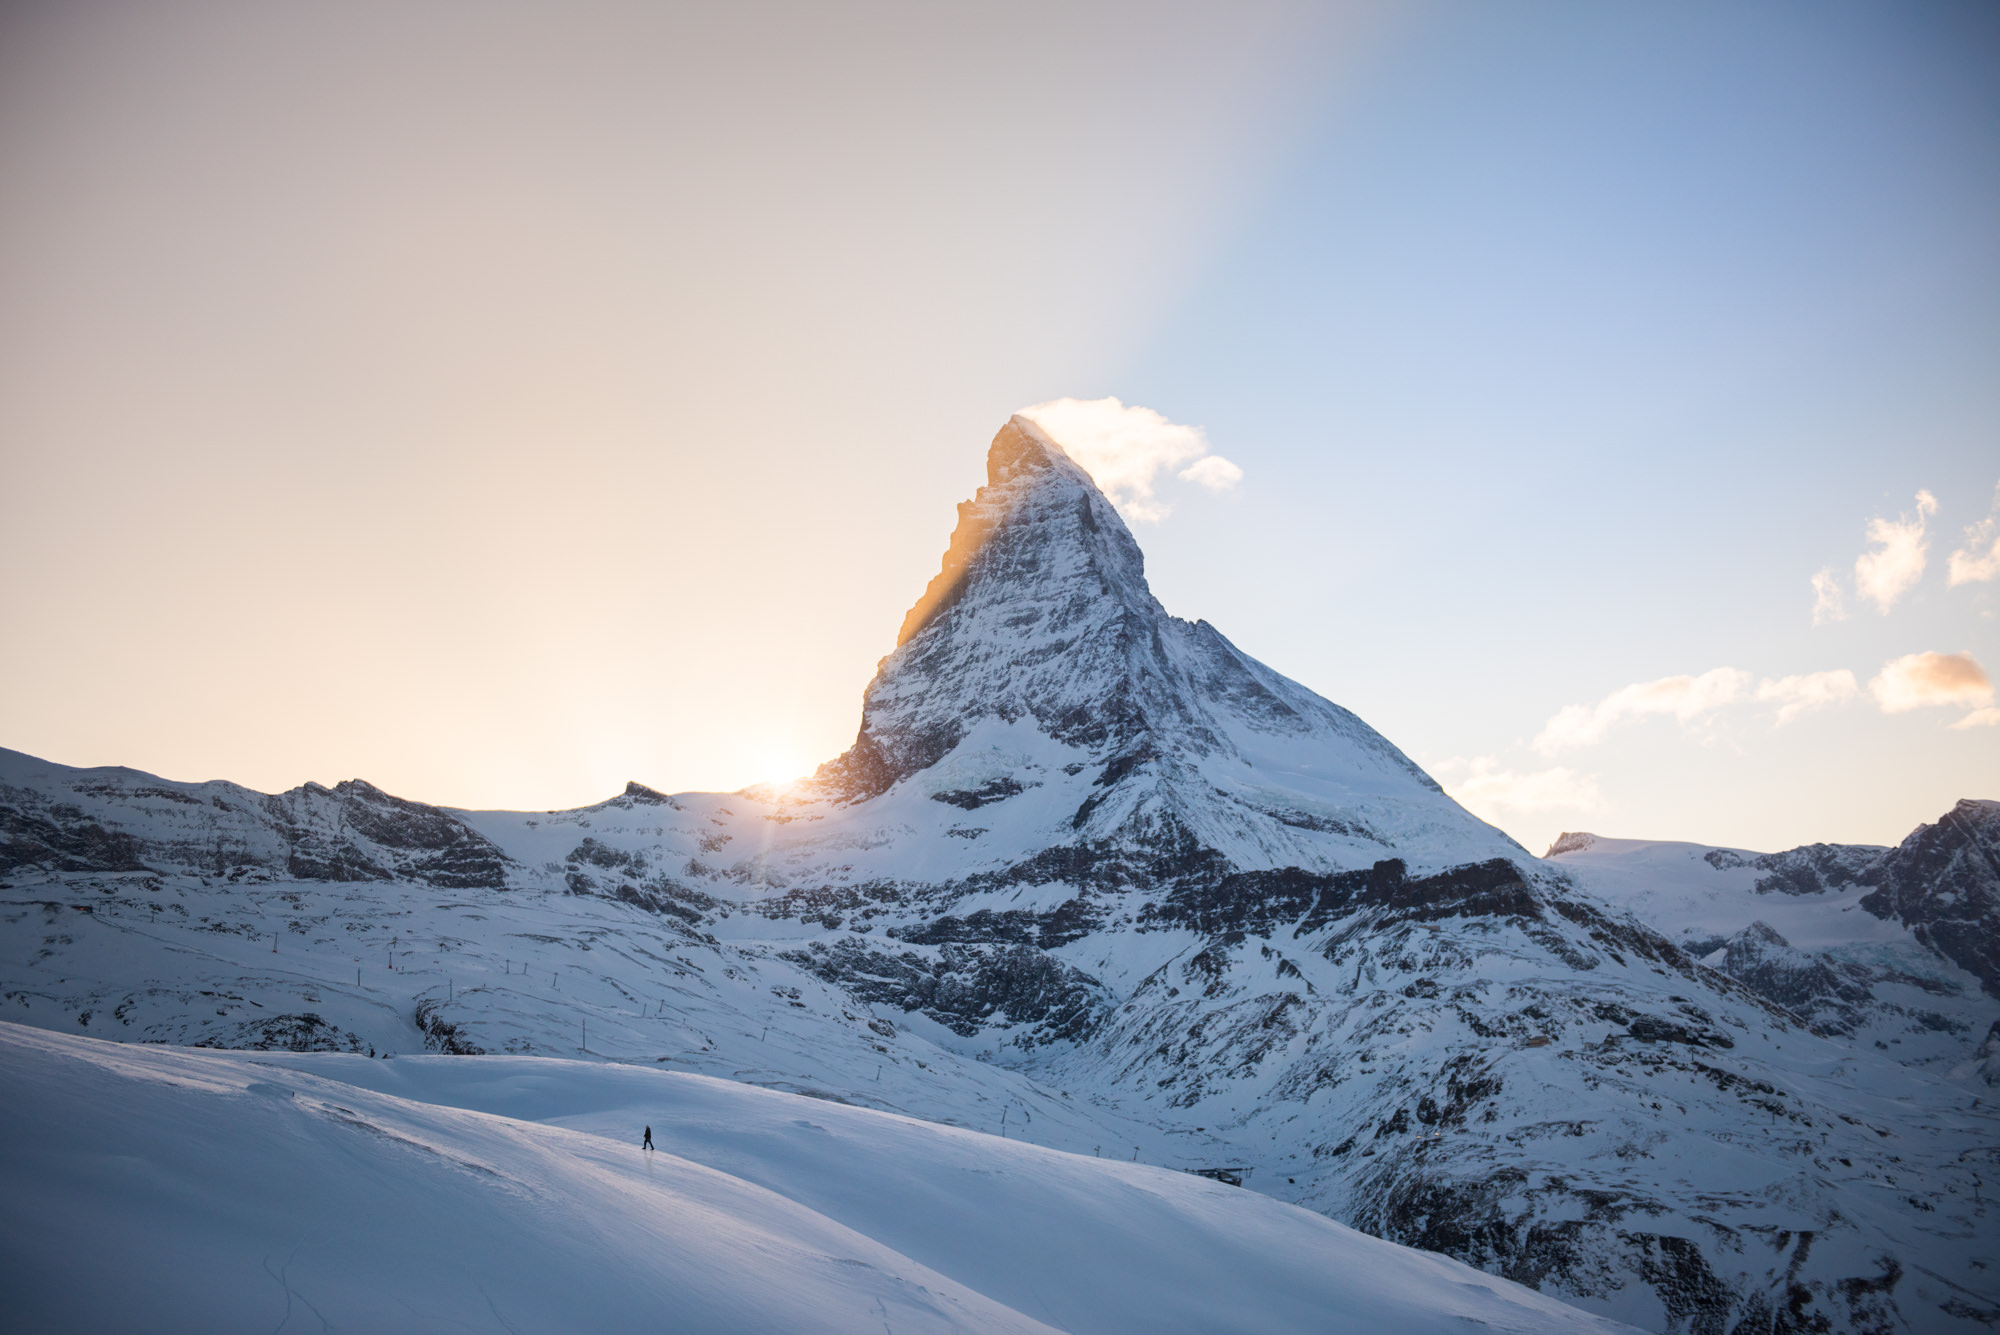 The sun setting behind the huge mountain the Matterhorn with a man walking in front